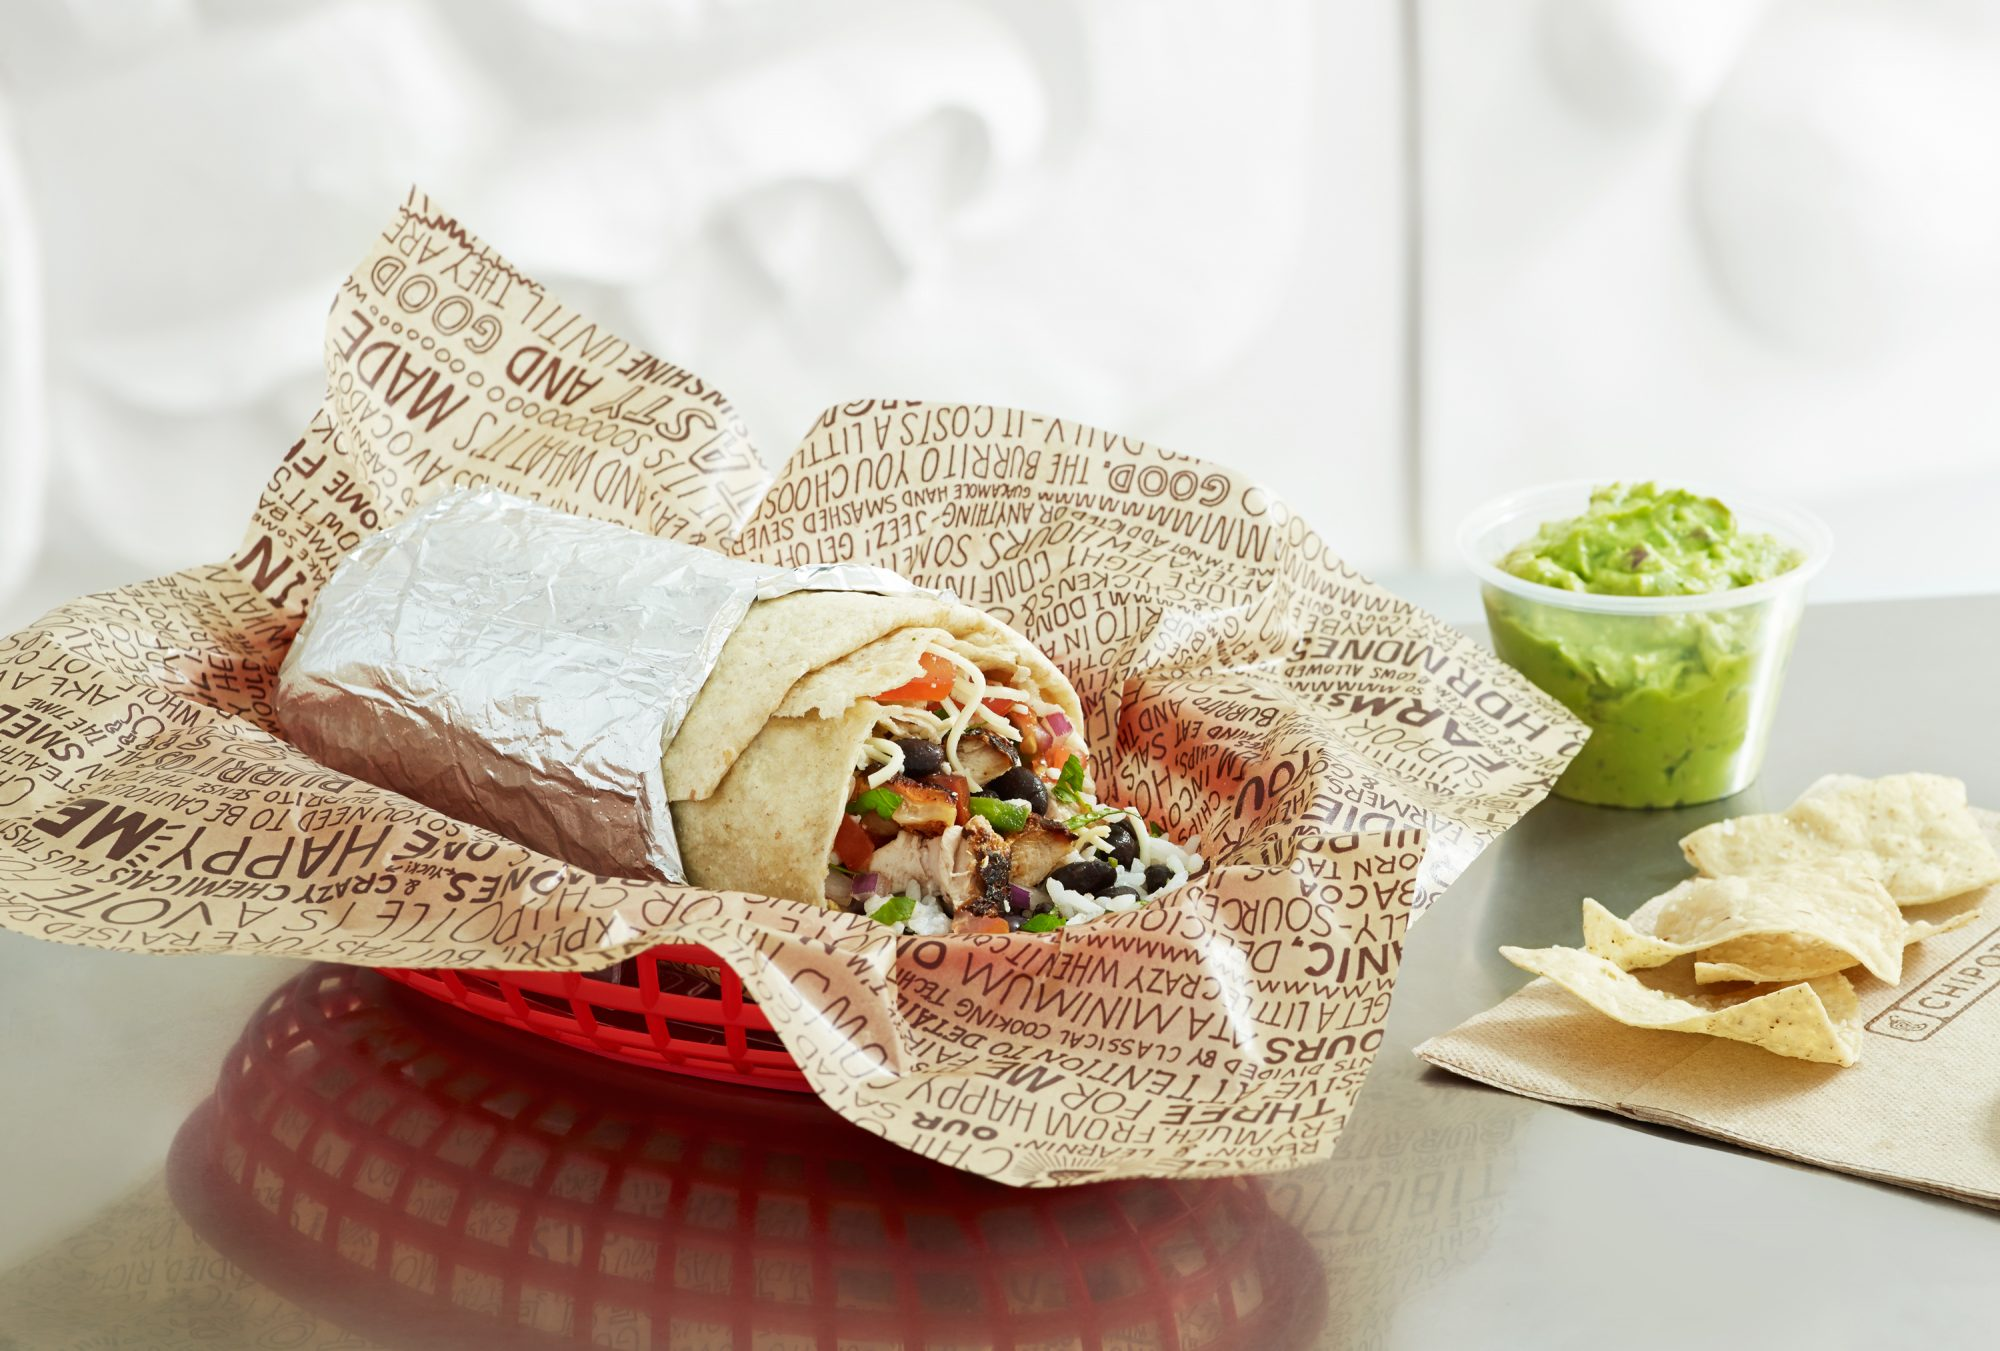 Chipotle Is Giving Away FREE Burritos. Here's How to Get One